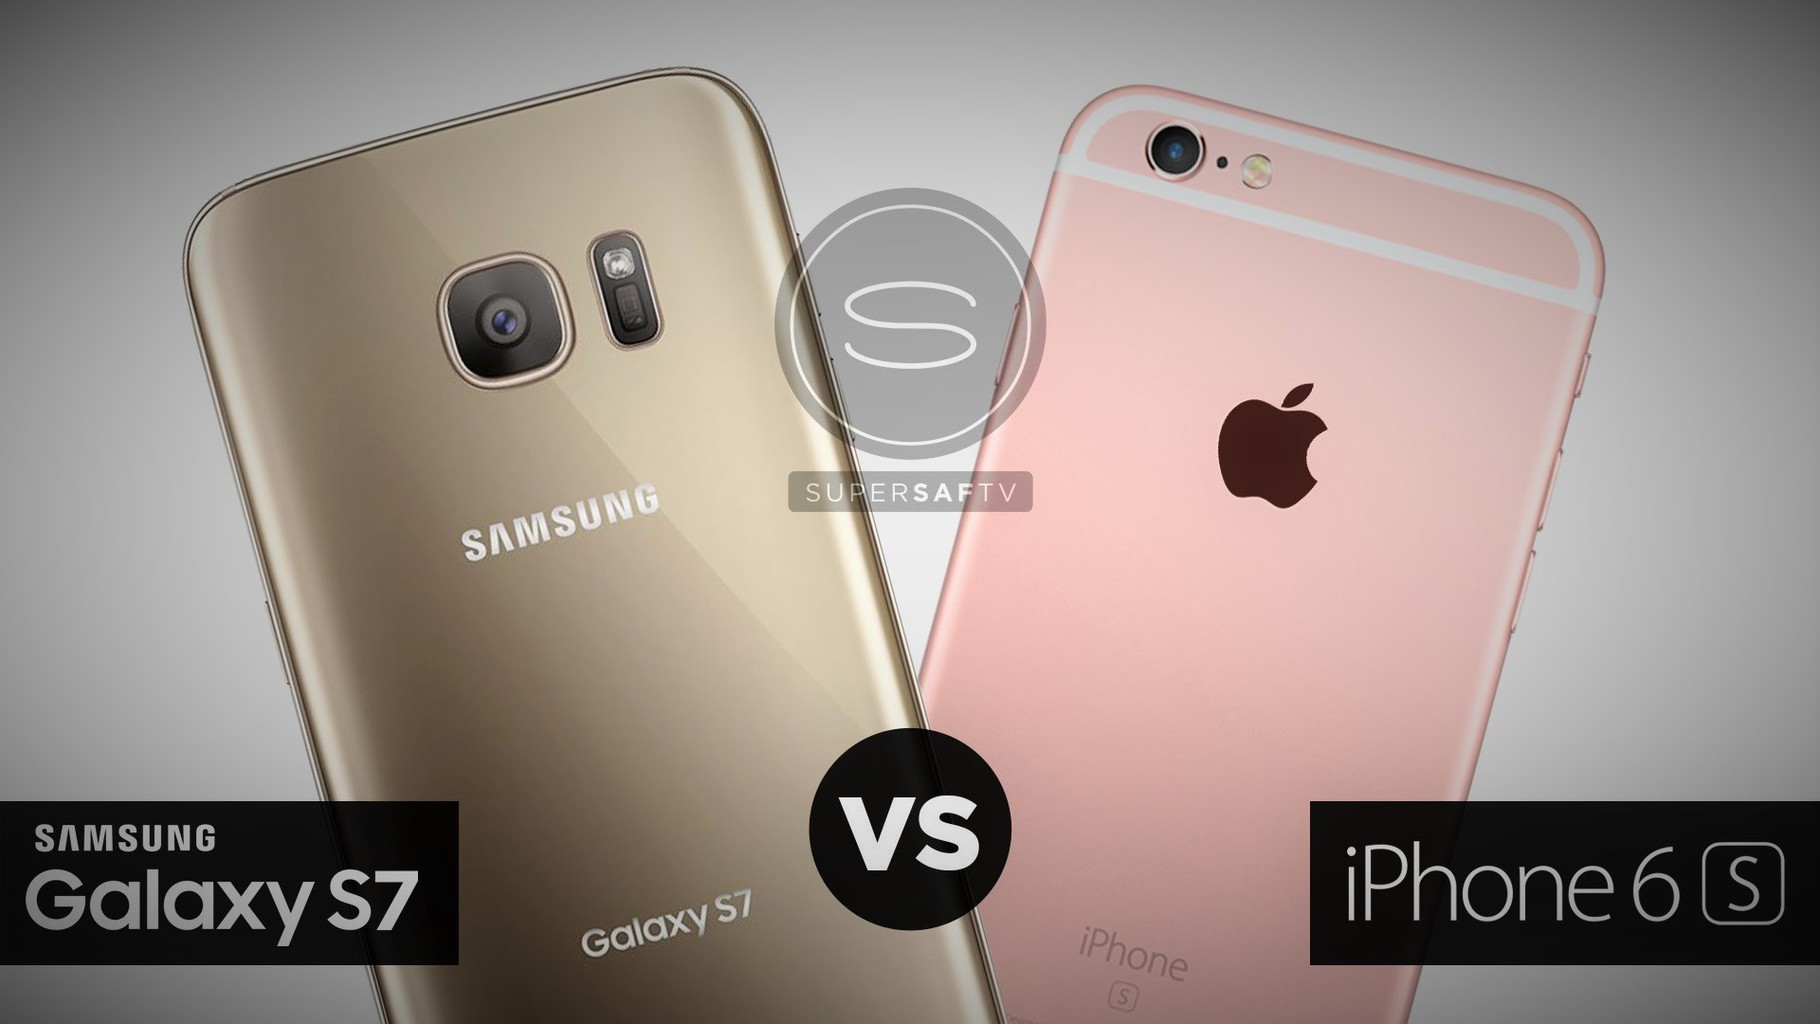 iPhone 6s and samsung galaxy s7